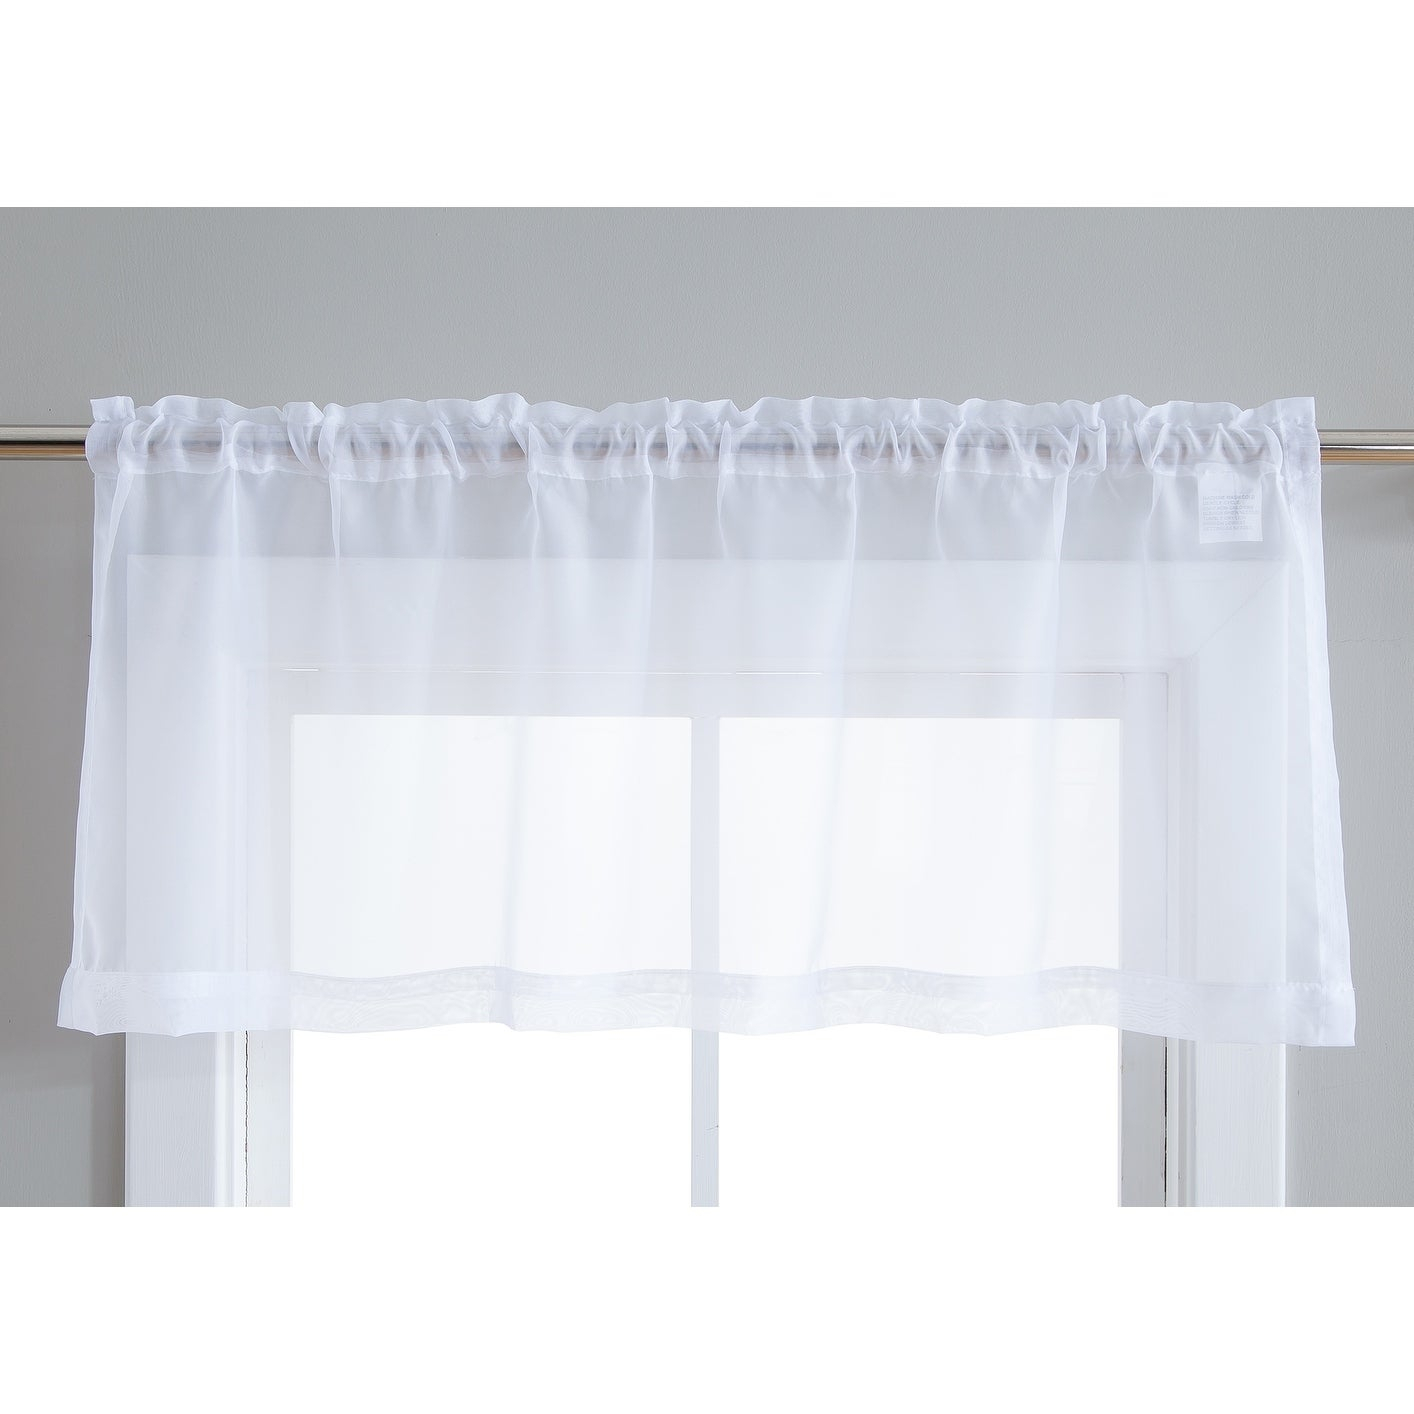 2 Piece Premium Sheer Voile Window Grommet Short Curtain Valance Café Tiers Panels Bathroom & Kitchen – Set Of 2 Valances Throughout Traditional Two Piece Tailored Tier And Valance Window Curtains (View 15 of 20)